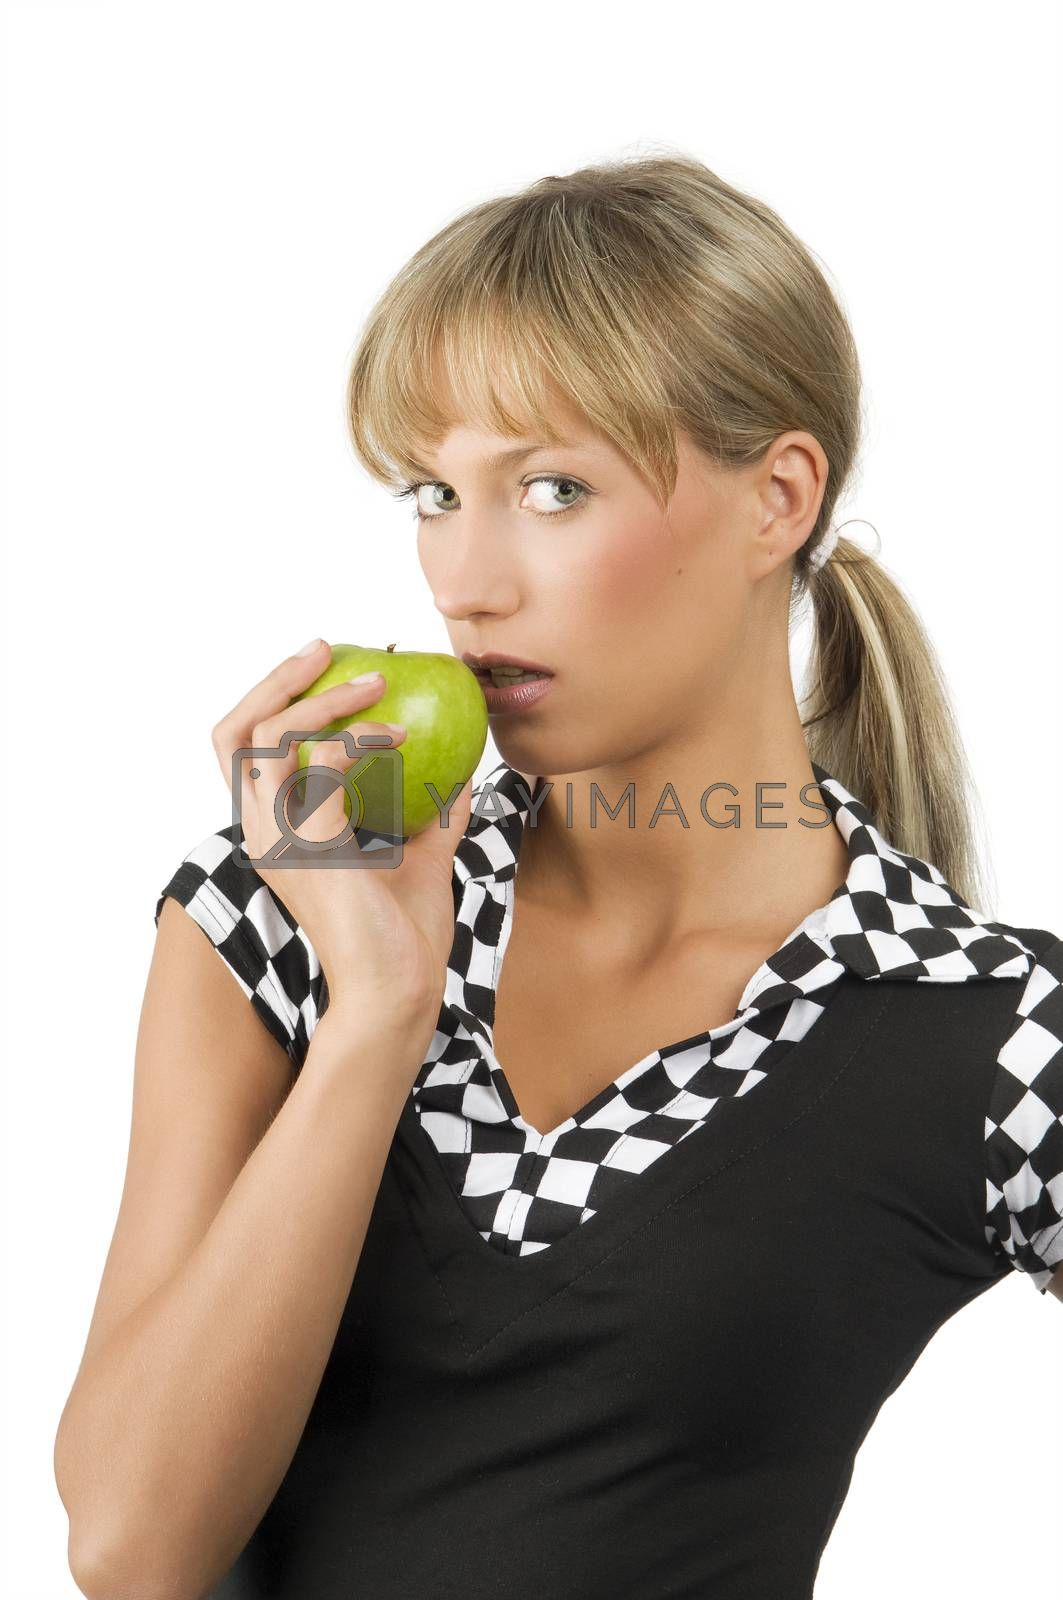 Royalty free image of biting green apple by fotoCD